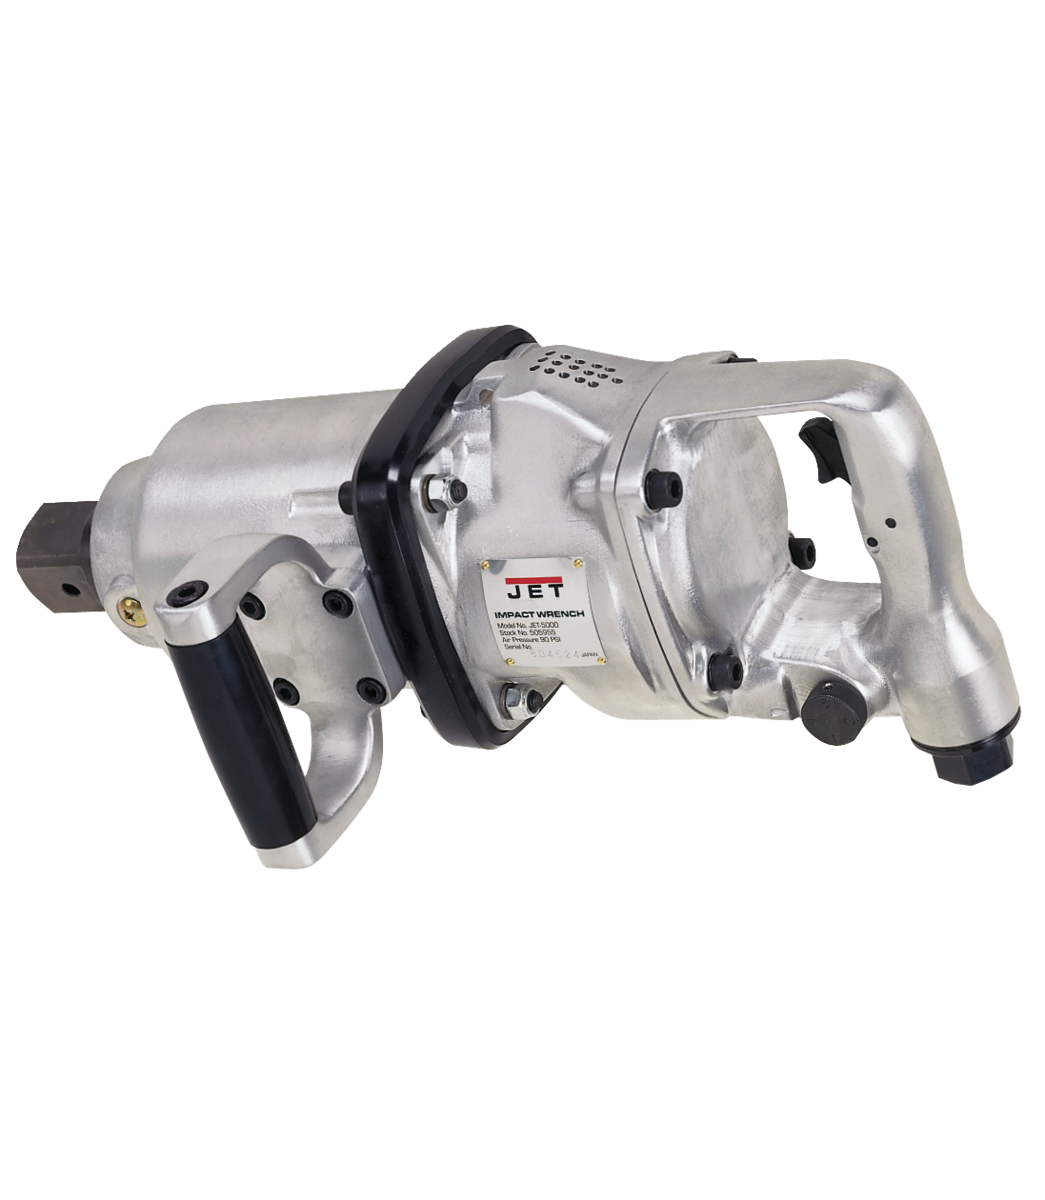 "JET-5000, 1-1/2"" D-Handle Impact Wrench"